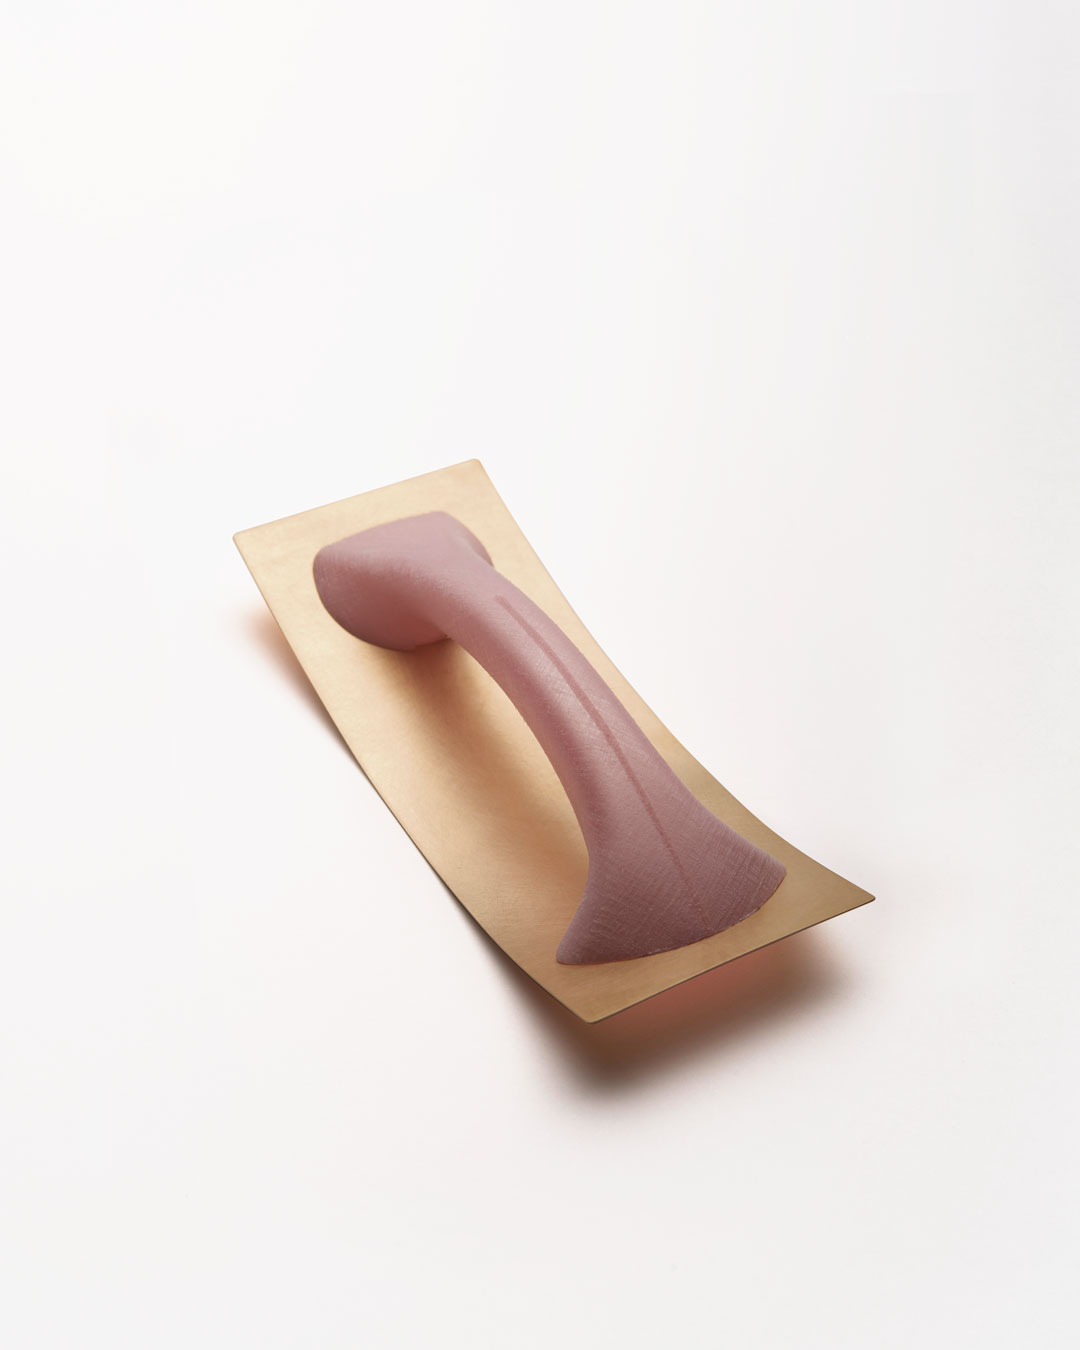 Ute Eitzenhöfer, Roségoldblech mit Griff (Rose Gold Sheet with Handle), 2013, object; 18ct rose gold, plastic (from packaging), 160 x 60 x 40 mm, price on request